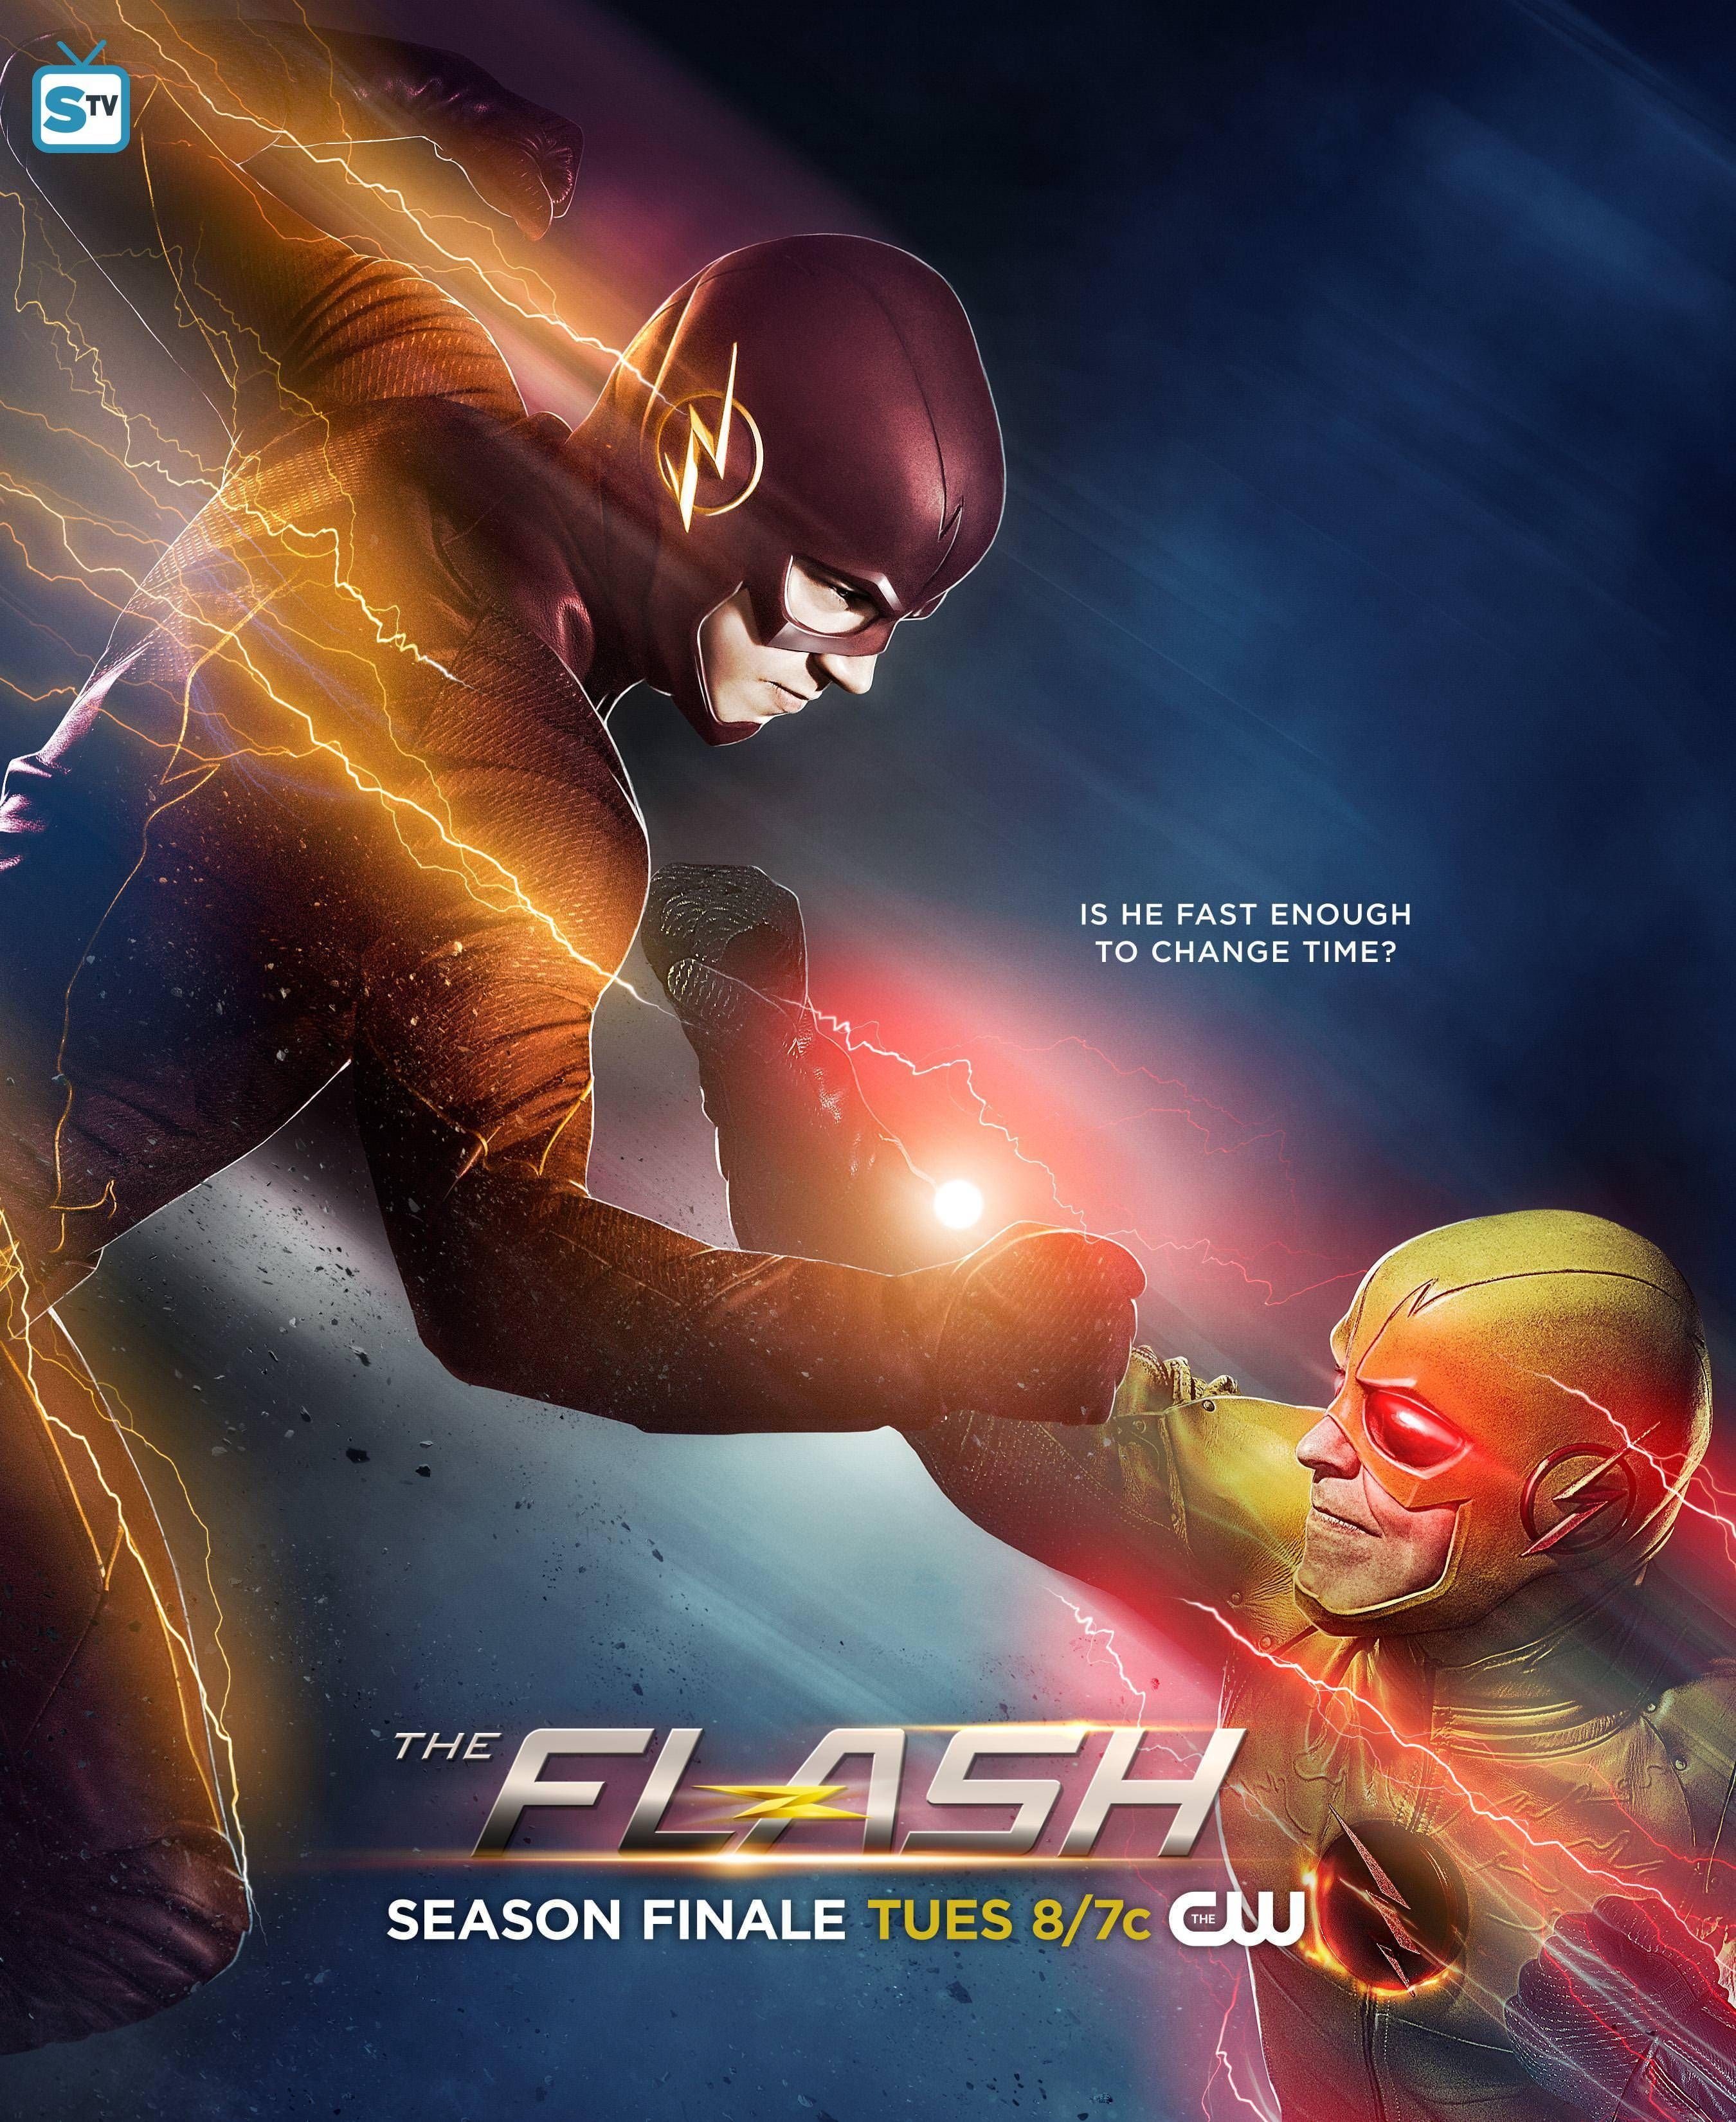 THE FLASH Goes To War With 'ReverseFlash' In Epic New